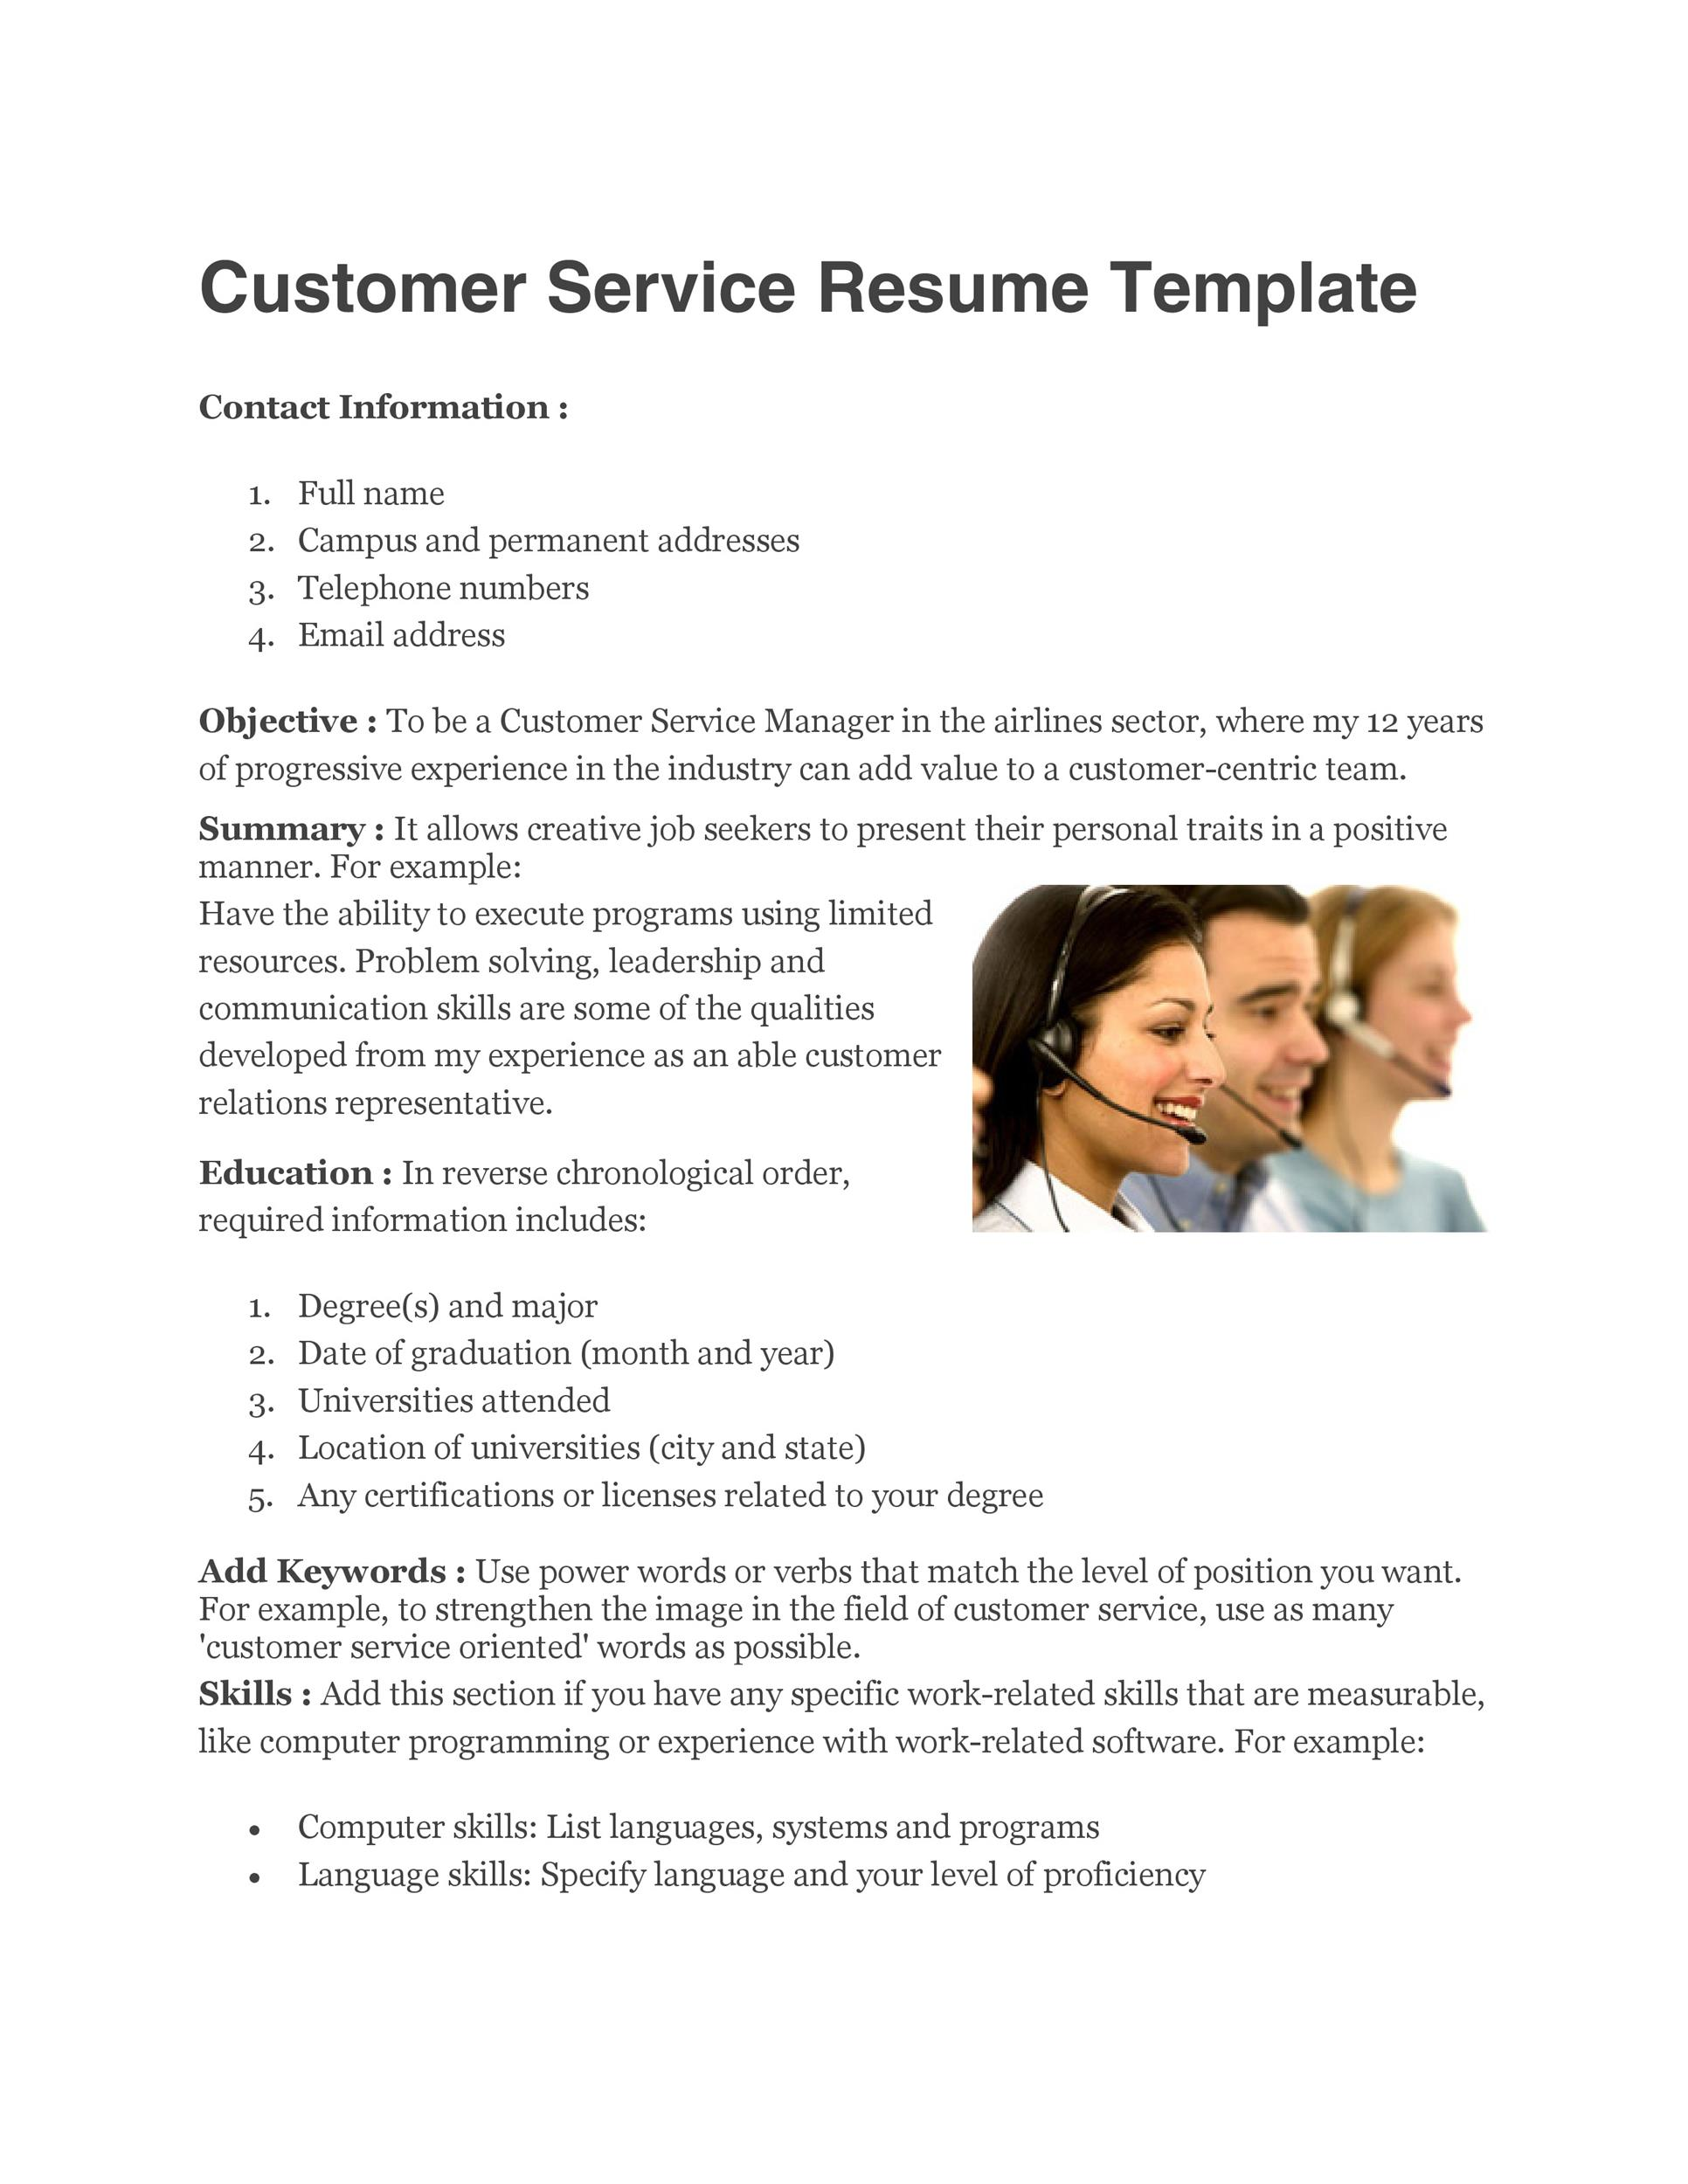 30+ Customer Service Resume Examples - Template Lab - customer service skills list resume